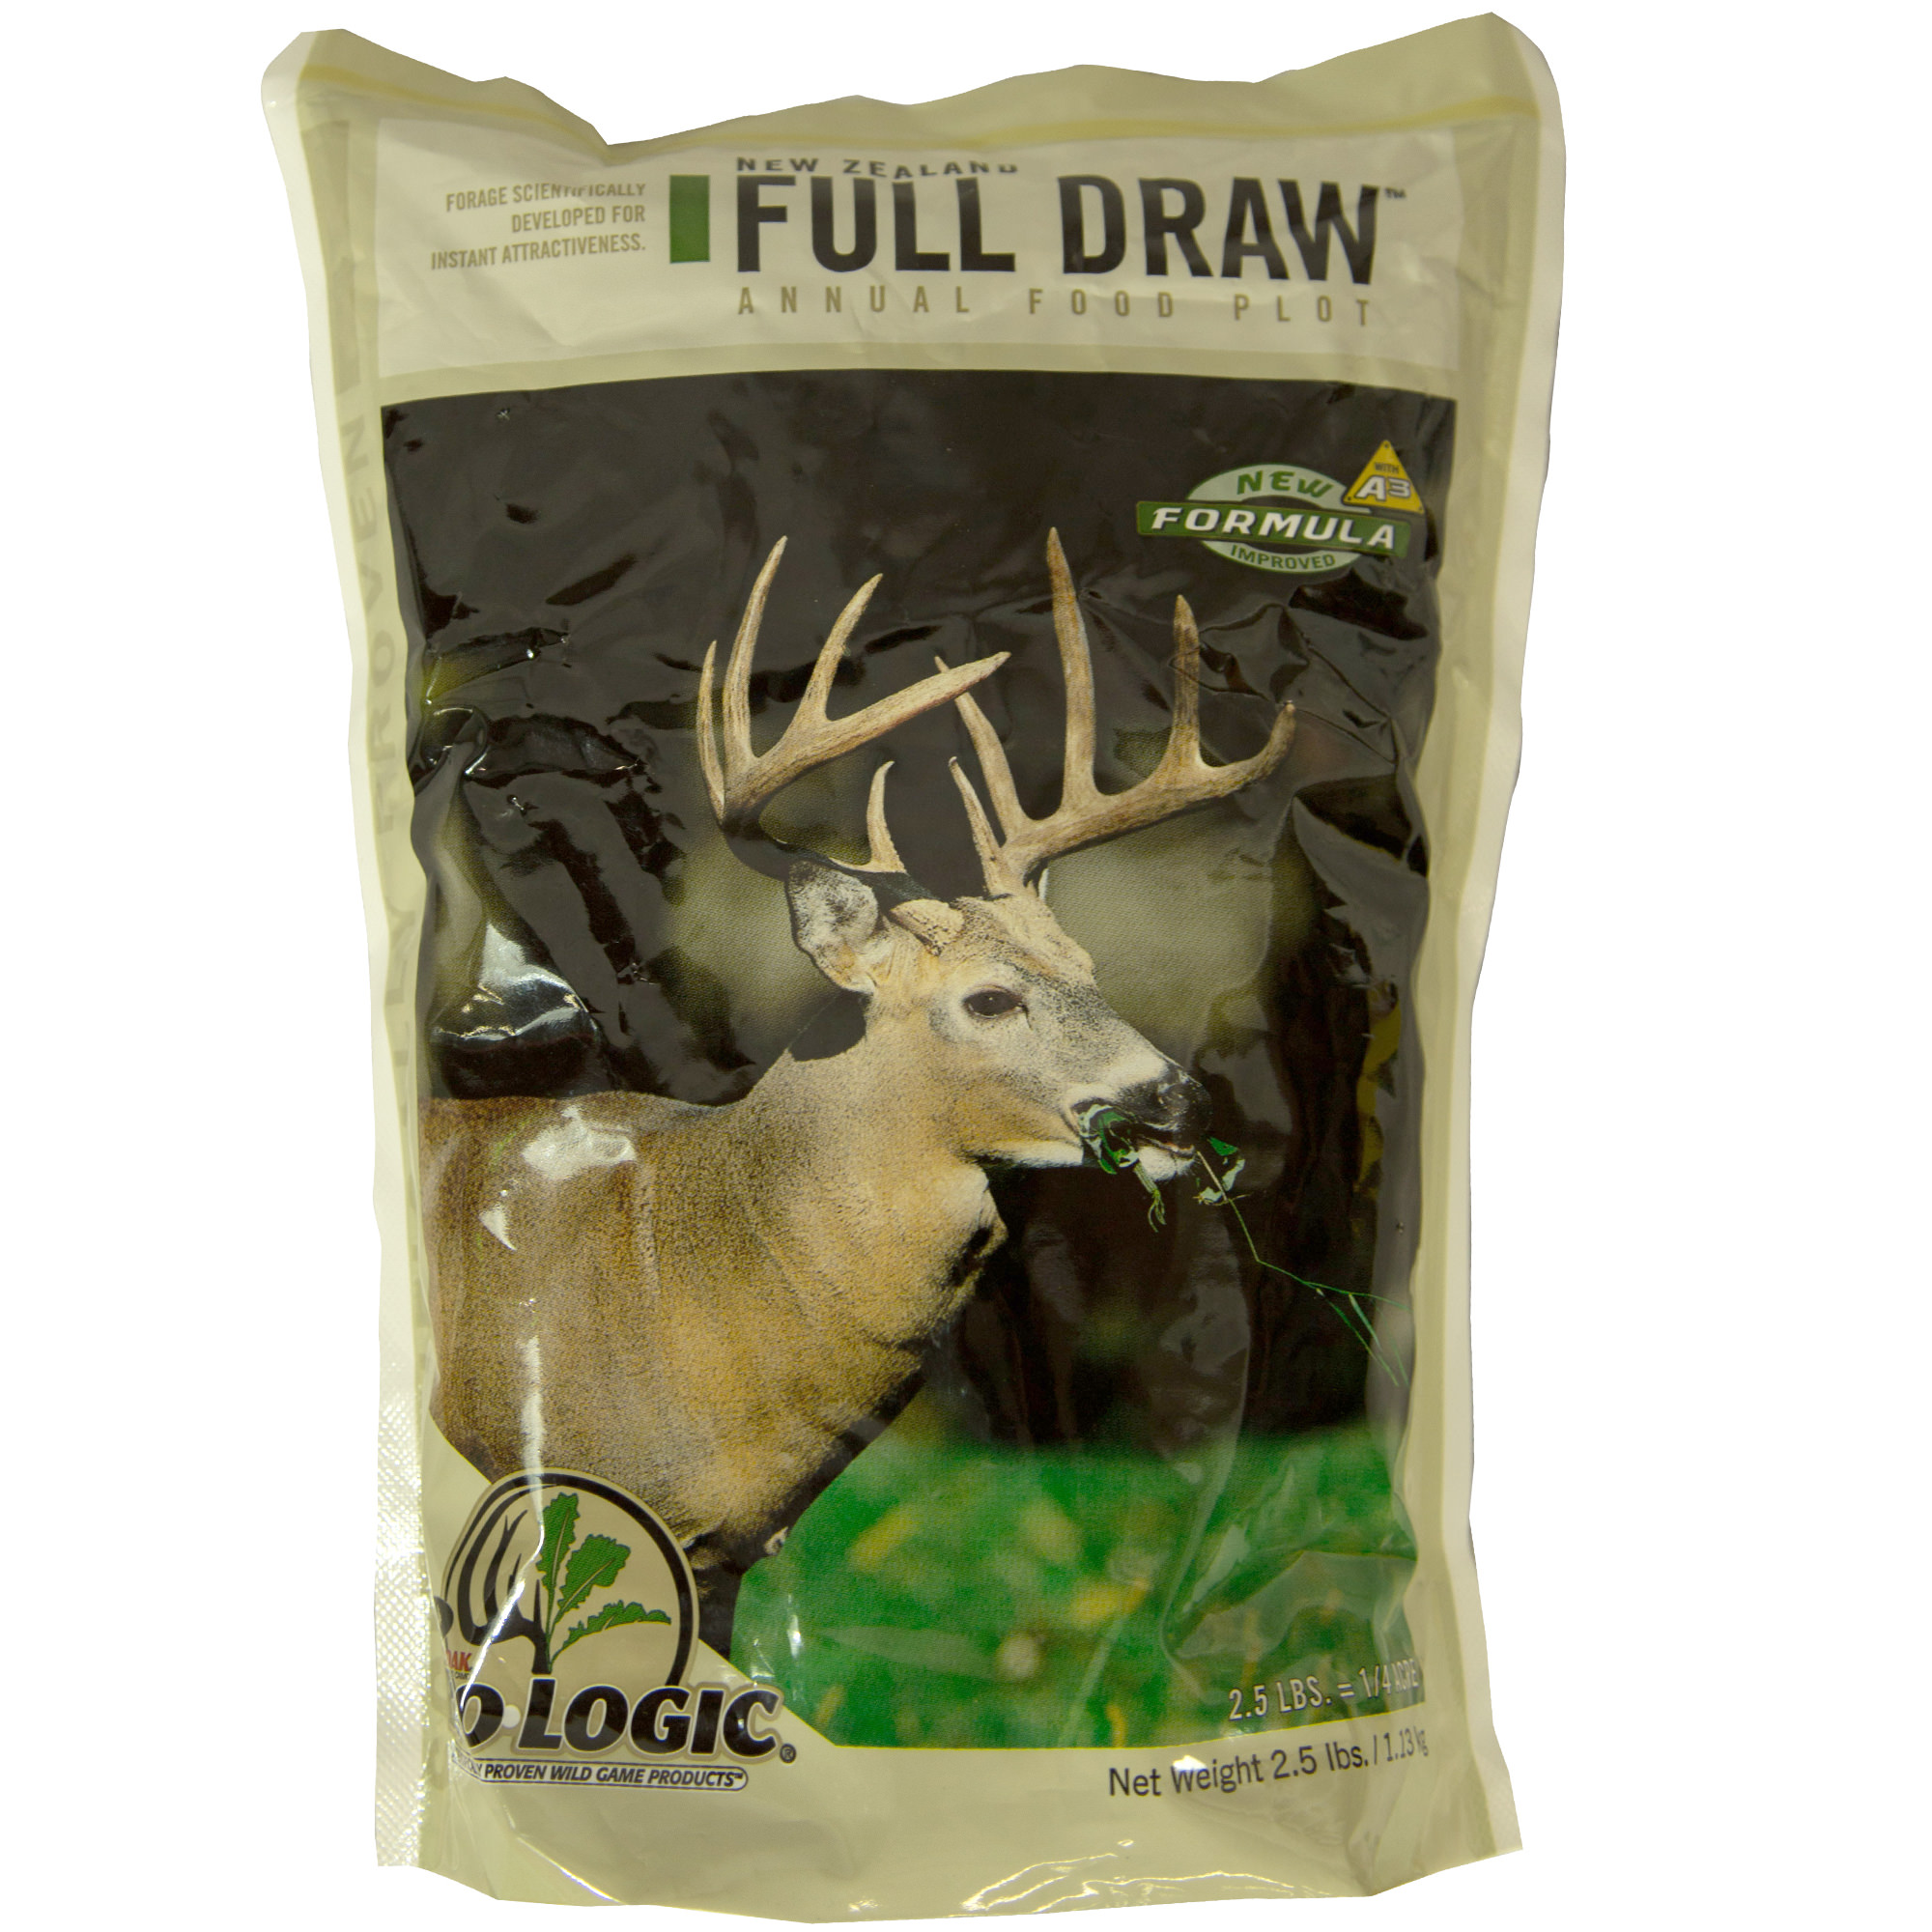 Mossy Oak BioLogic Full Draw All Season Food Plot Seed for Deer